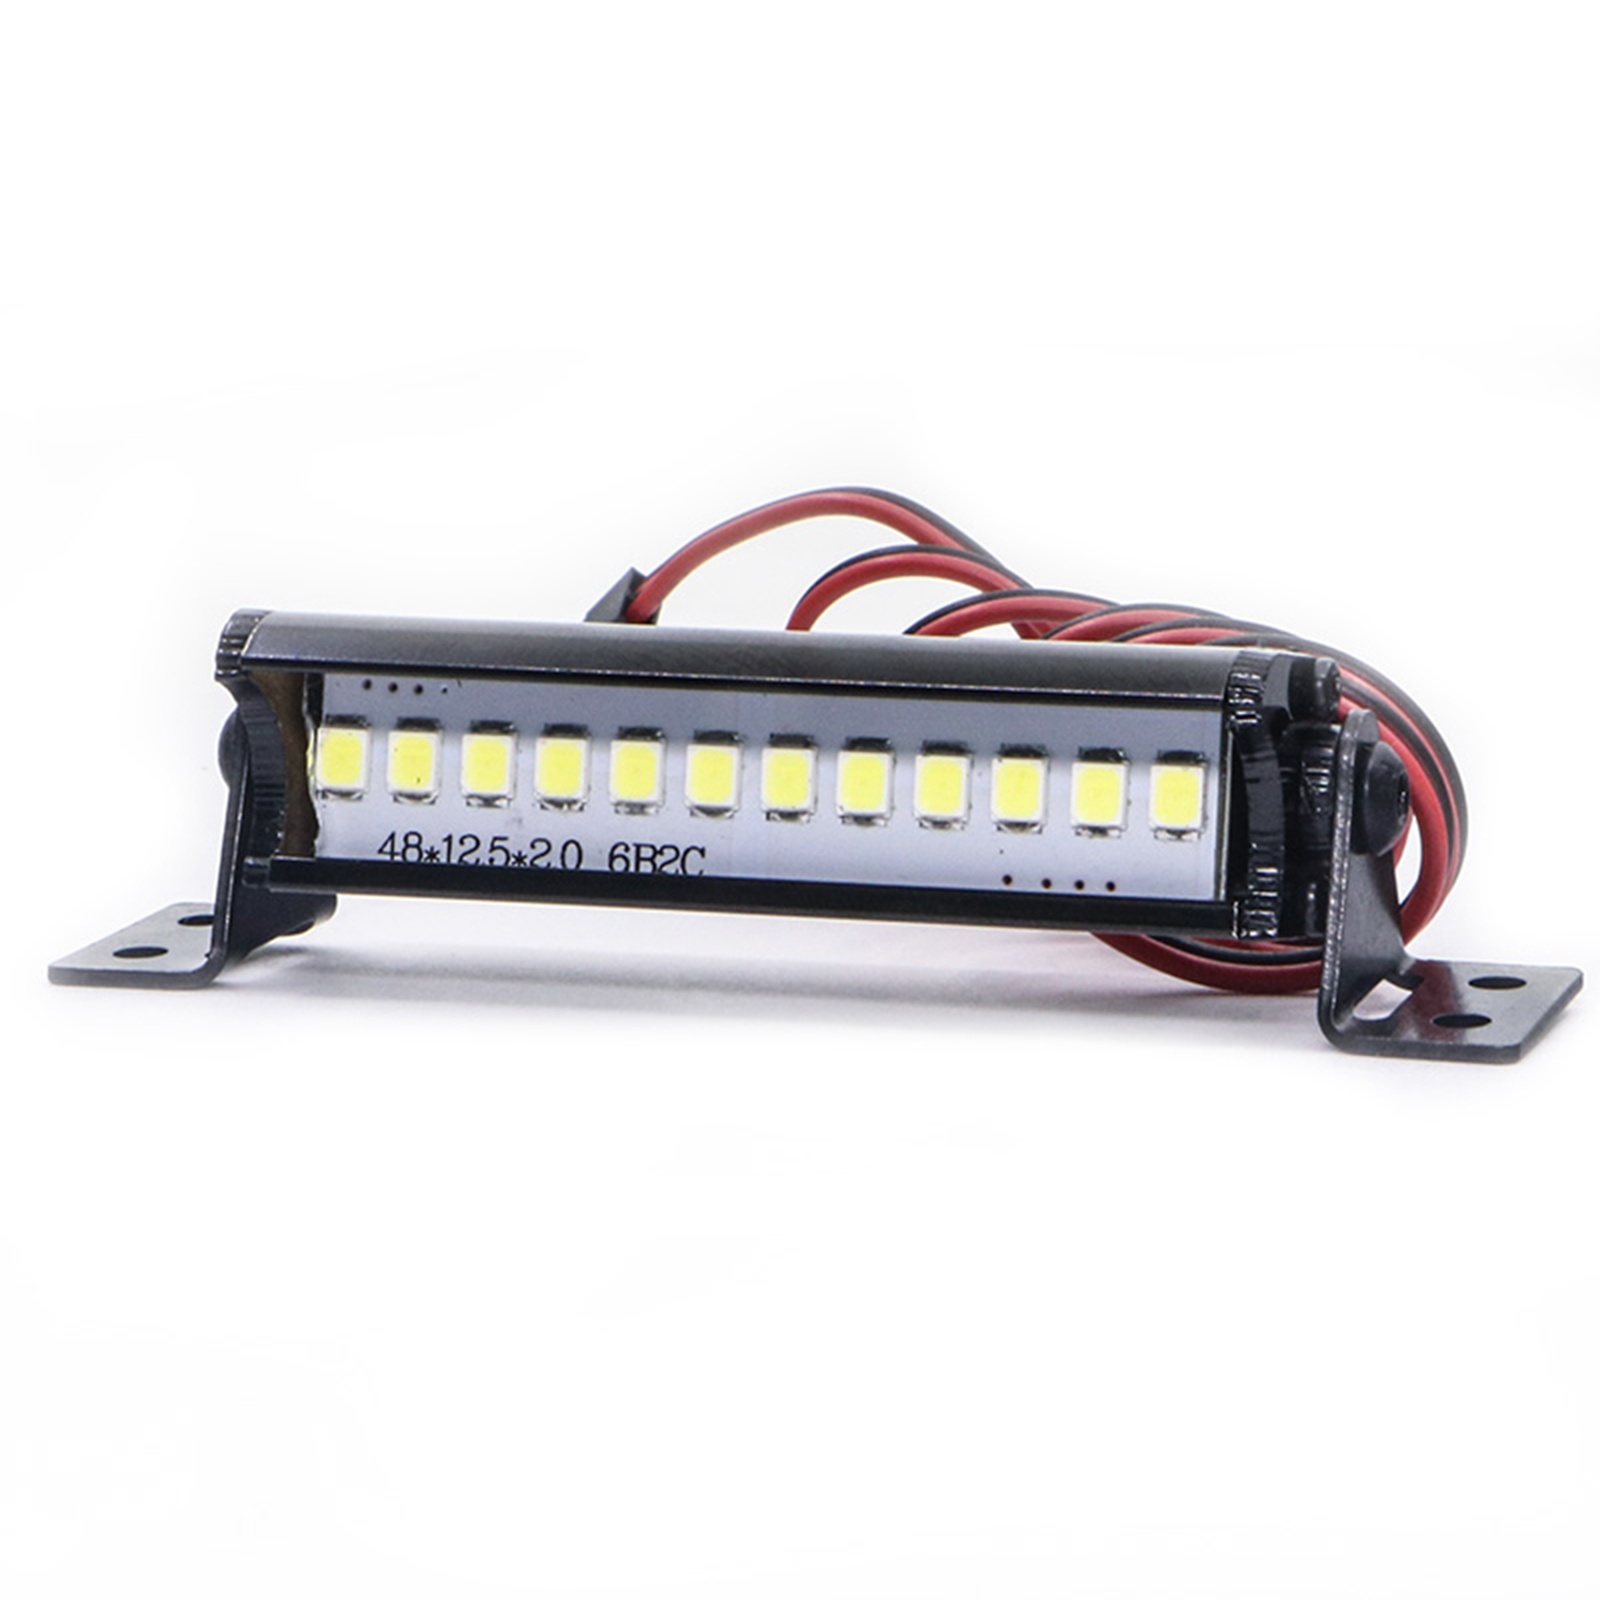 For 1/10 RC Crawler Car LED Light Bar For TRX4 SCX10 KM2 CC01LEDSuper Bright 12LED Light Bar Universal Accessories